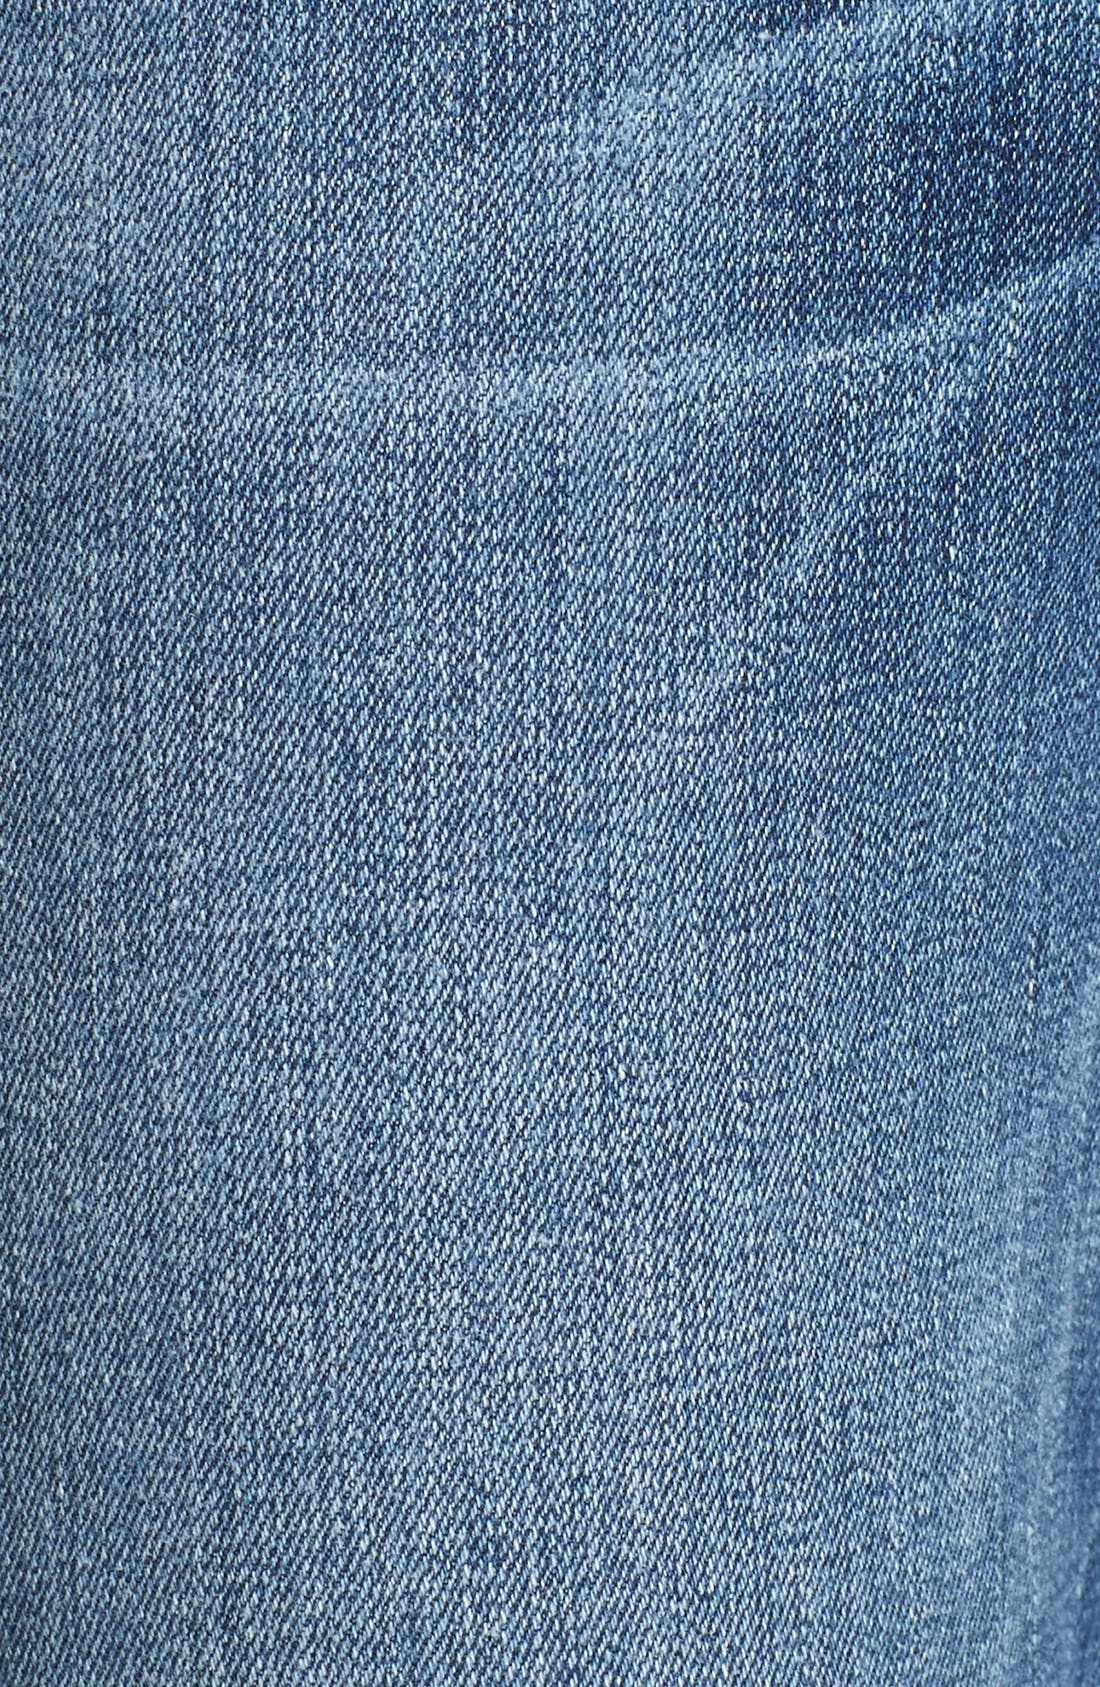 Alternate Image 6  - FRAME 'Le High Straight' High Rise Staggered Hem Jeans (Carroll) (Nordstrom Exclusive)